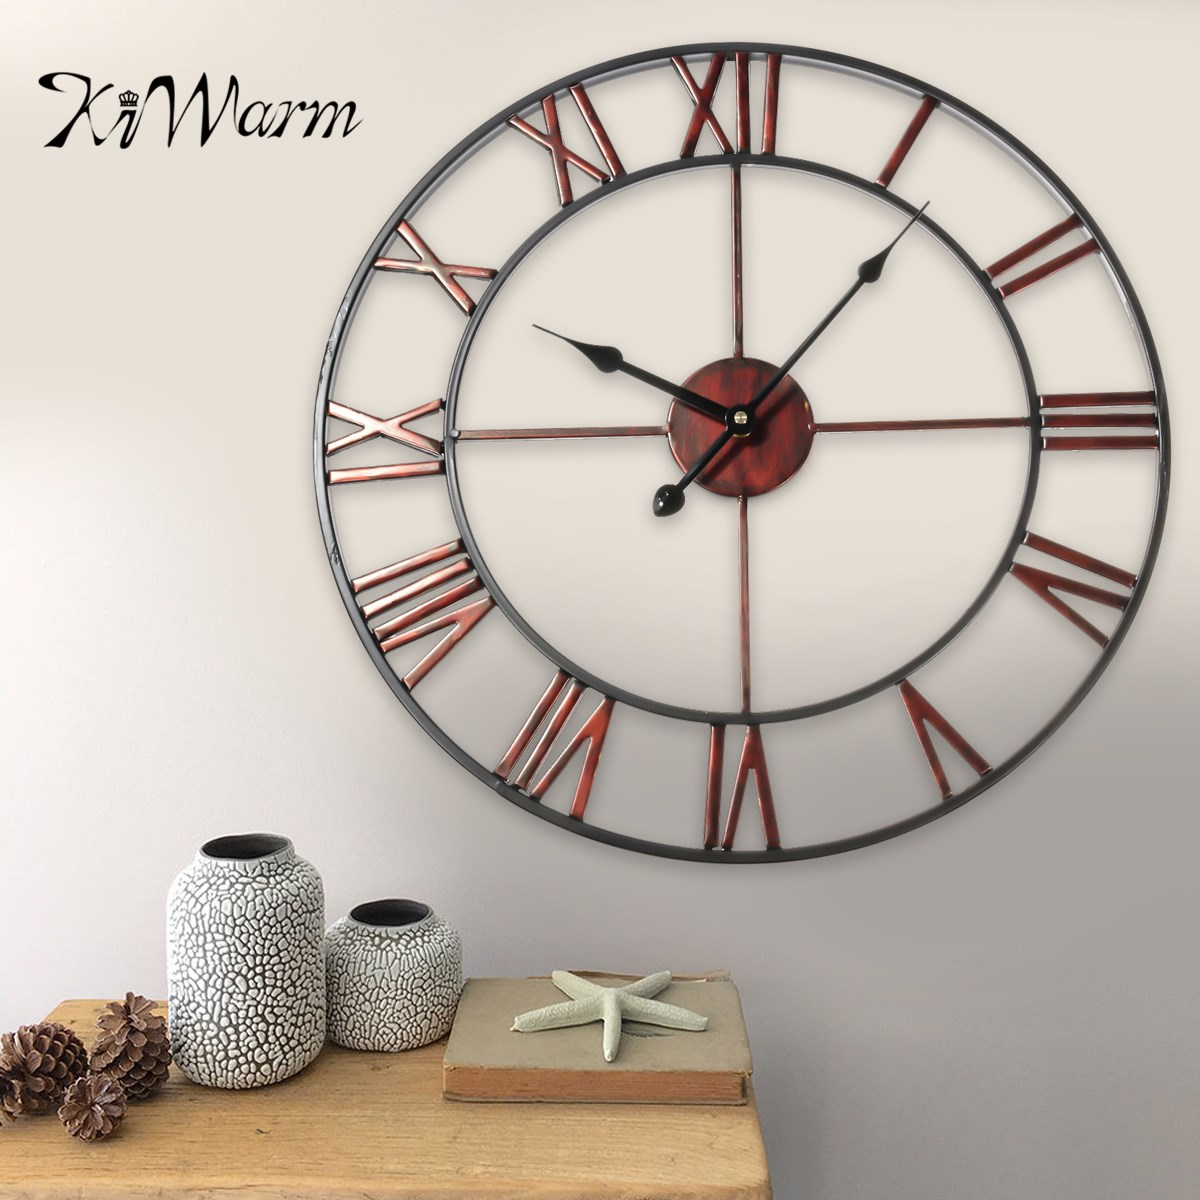 KiWarm Classic Large Metal Wrought Iron Wall Clock Provincial Roman Numerals Art Gear Decoration for Home Craft